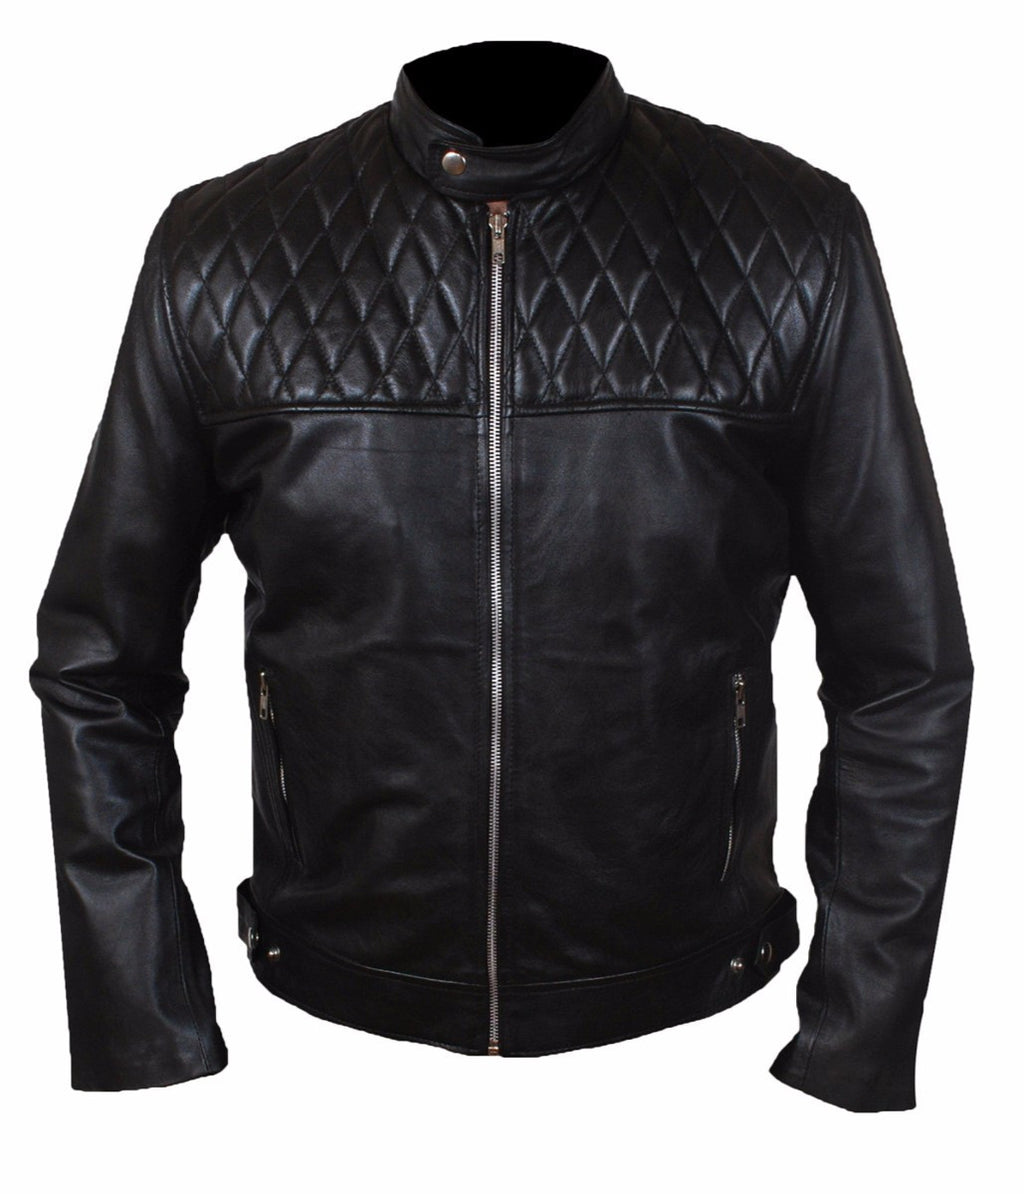 Diapo Leather Men's Black Rivet Center Zip with Shoulder Quilting Cowhide Vegetable Tanned Leather Jacket   40% OFF